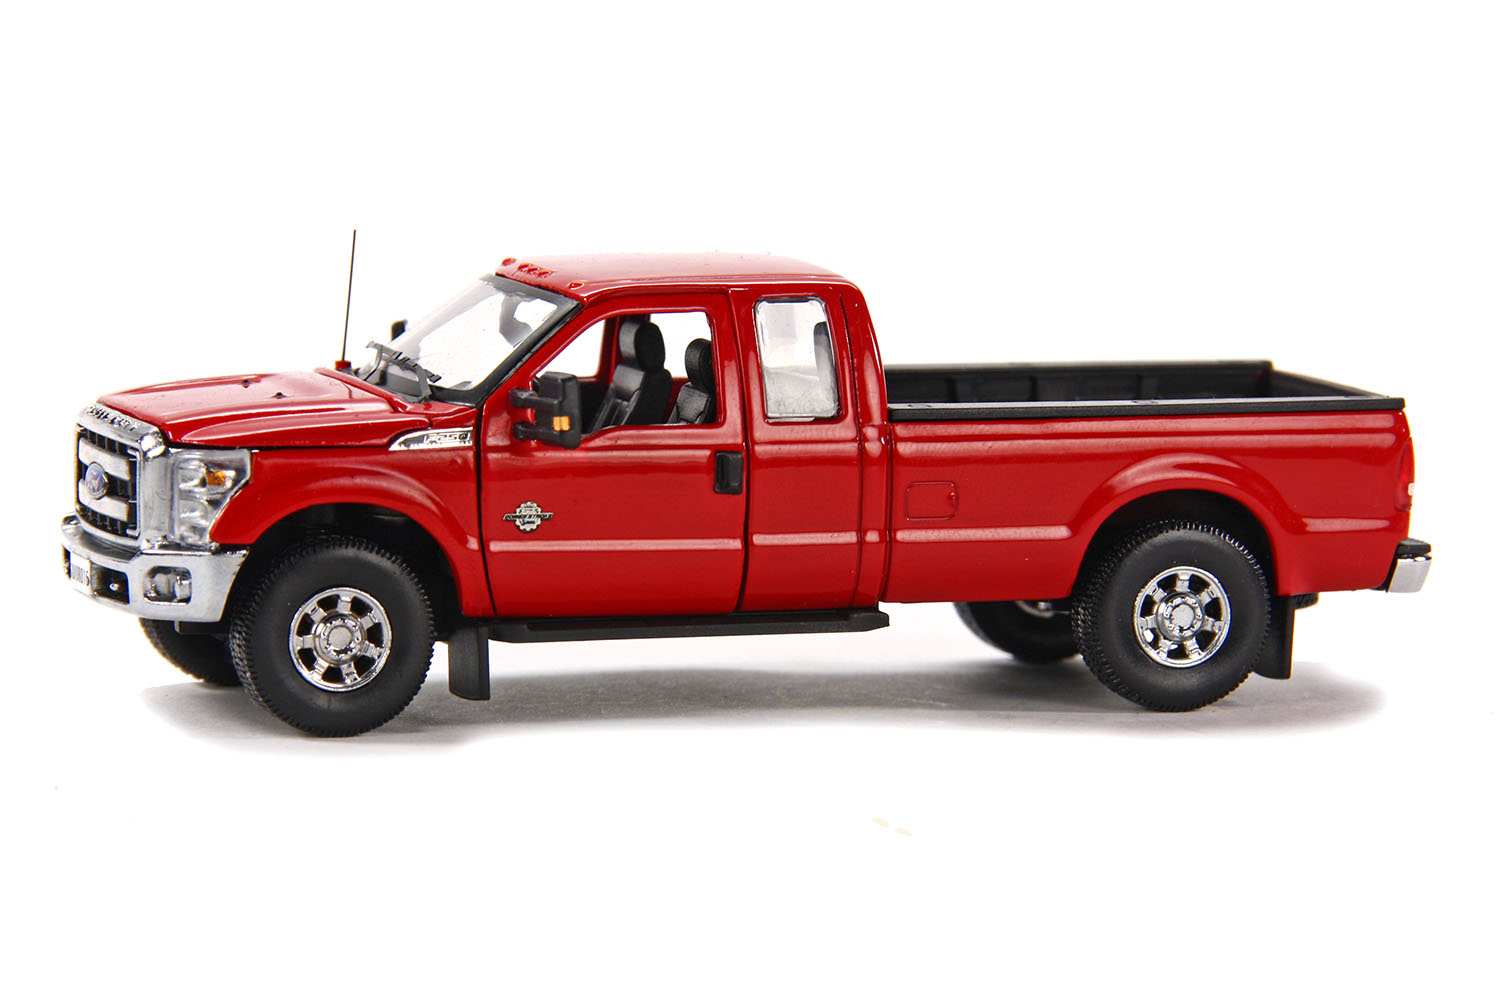 spiel modellkist 39 l shop ford pick up f250 xlt 8 39 bett rot chrom online kaufen. Black Bedroom Furniture Sets. Home Design Ideas